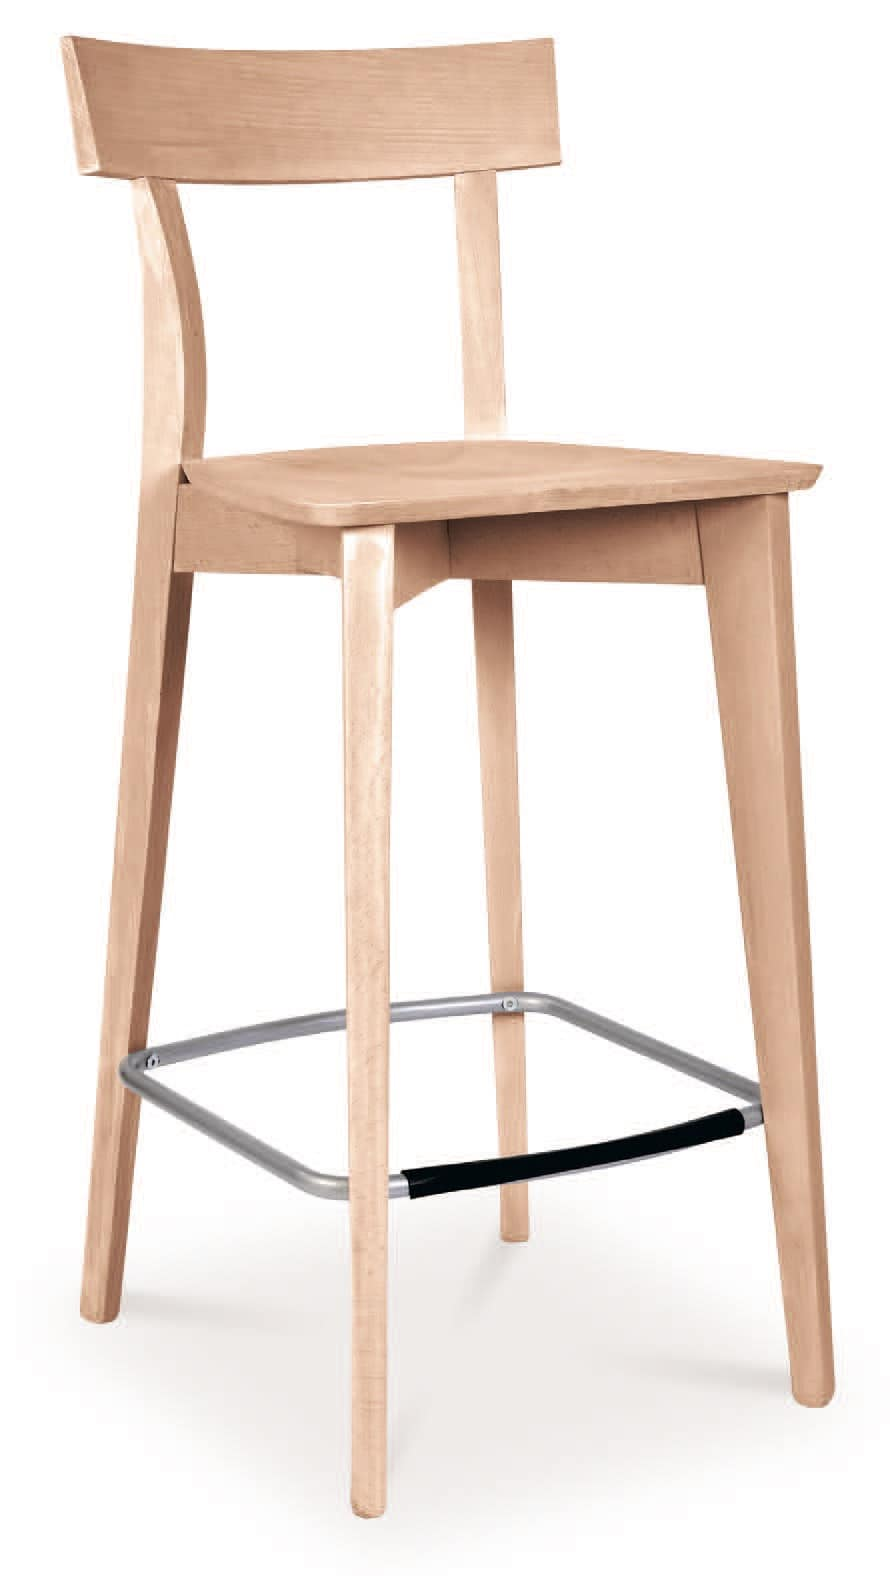 SG 646, Stool made entirely of wood, with steel footrest